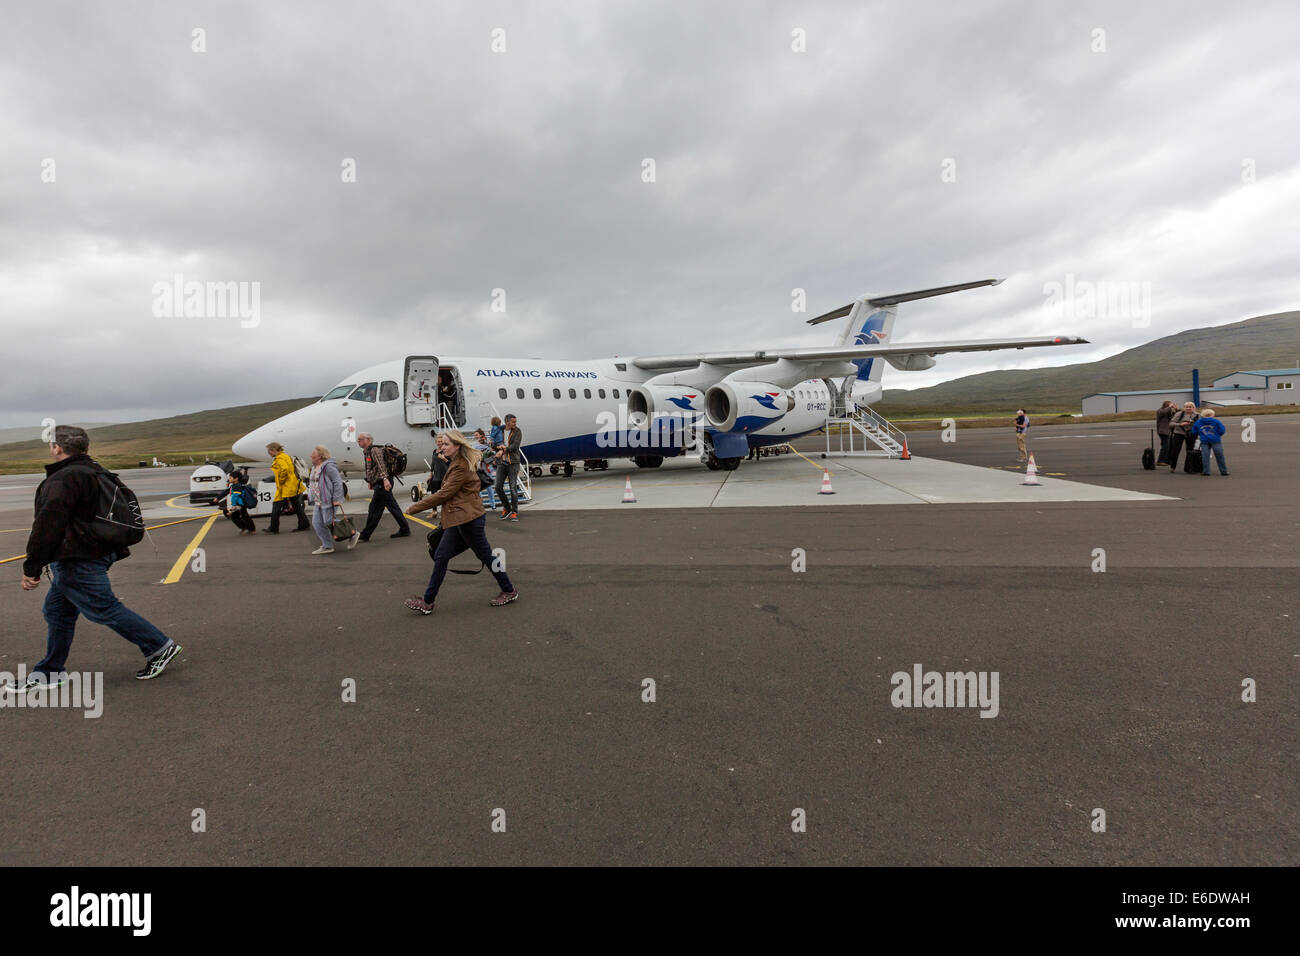 Passengers disembarking in the Atlantic Airways flight, AVRO  rj85, from London Stansted. Vágar Airport. - Stock Image